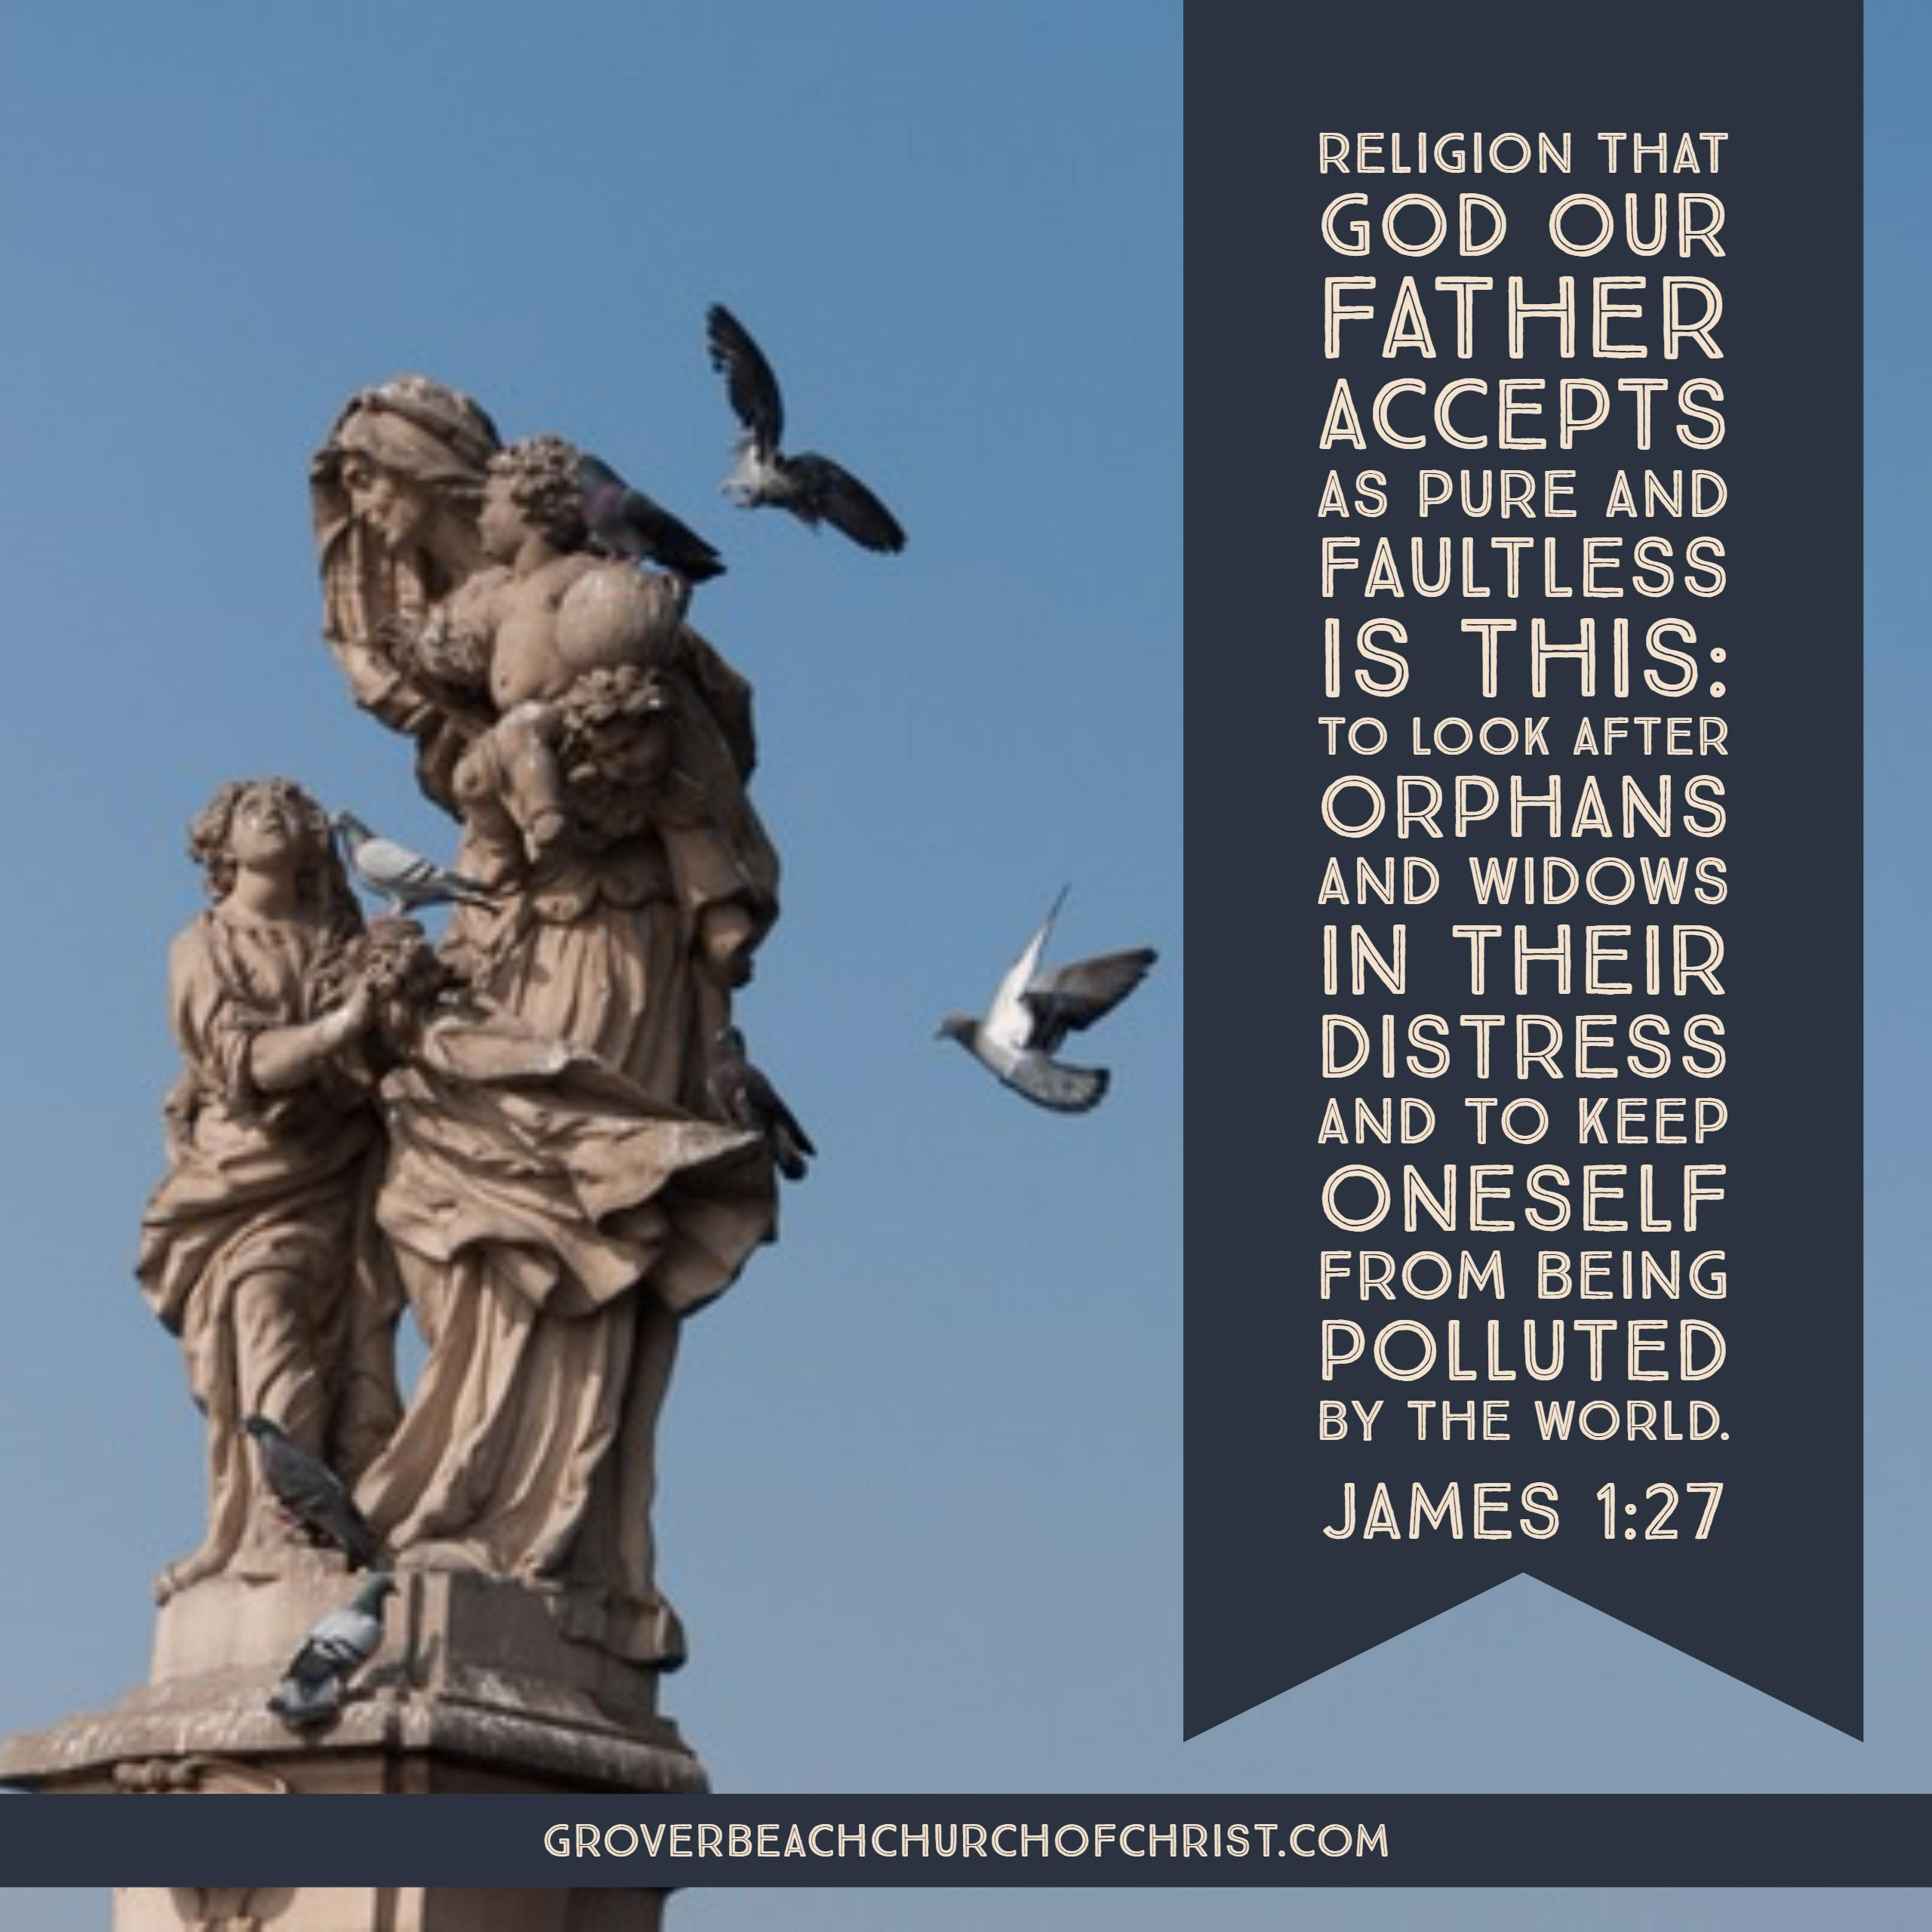 james-1-27-religion-that-god